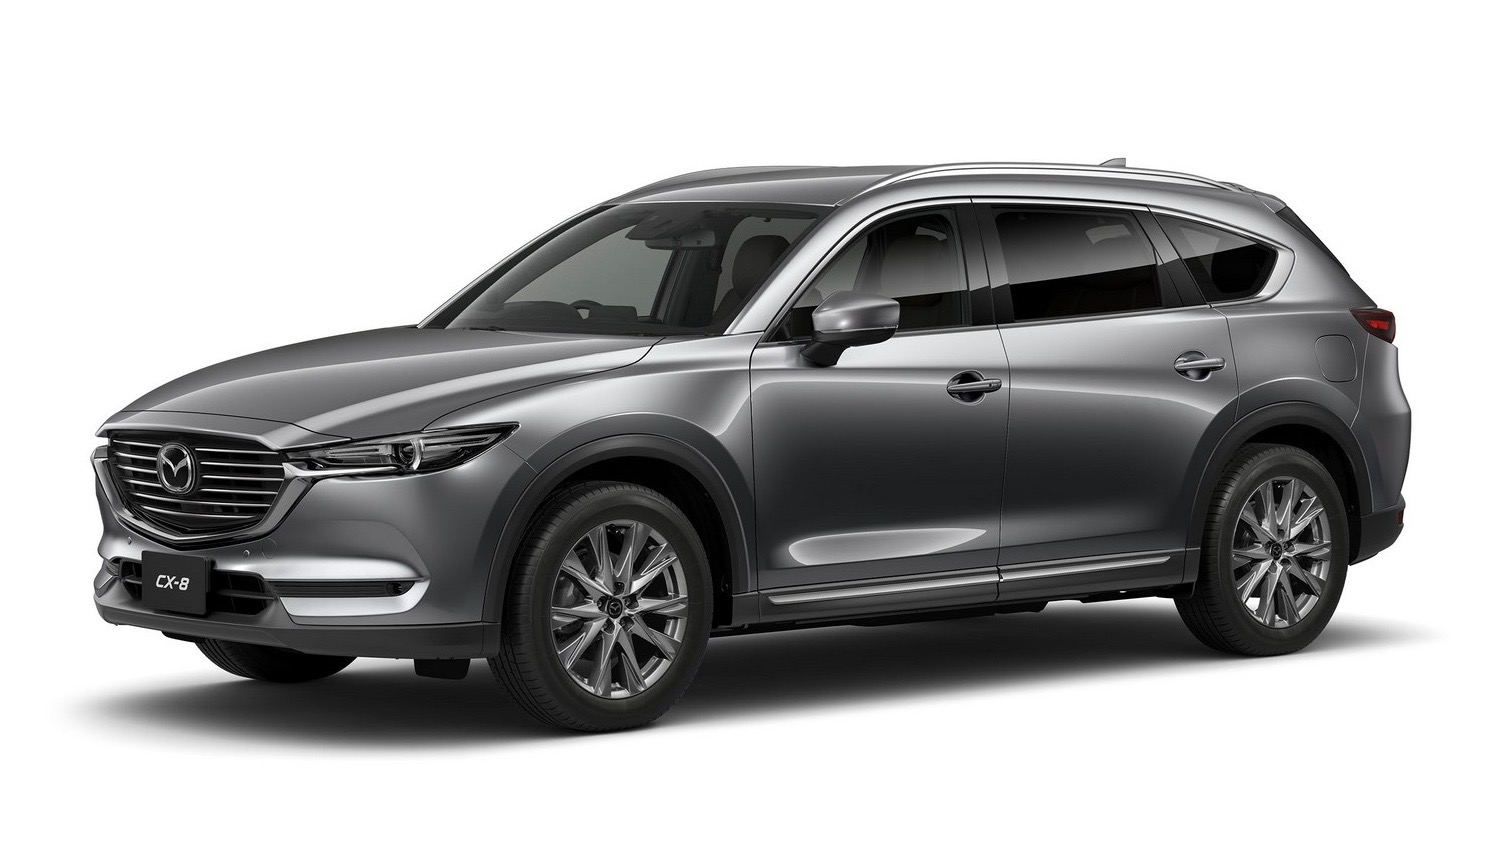 2018 Mazda CX-8 grey front side